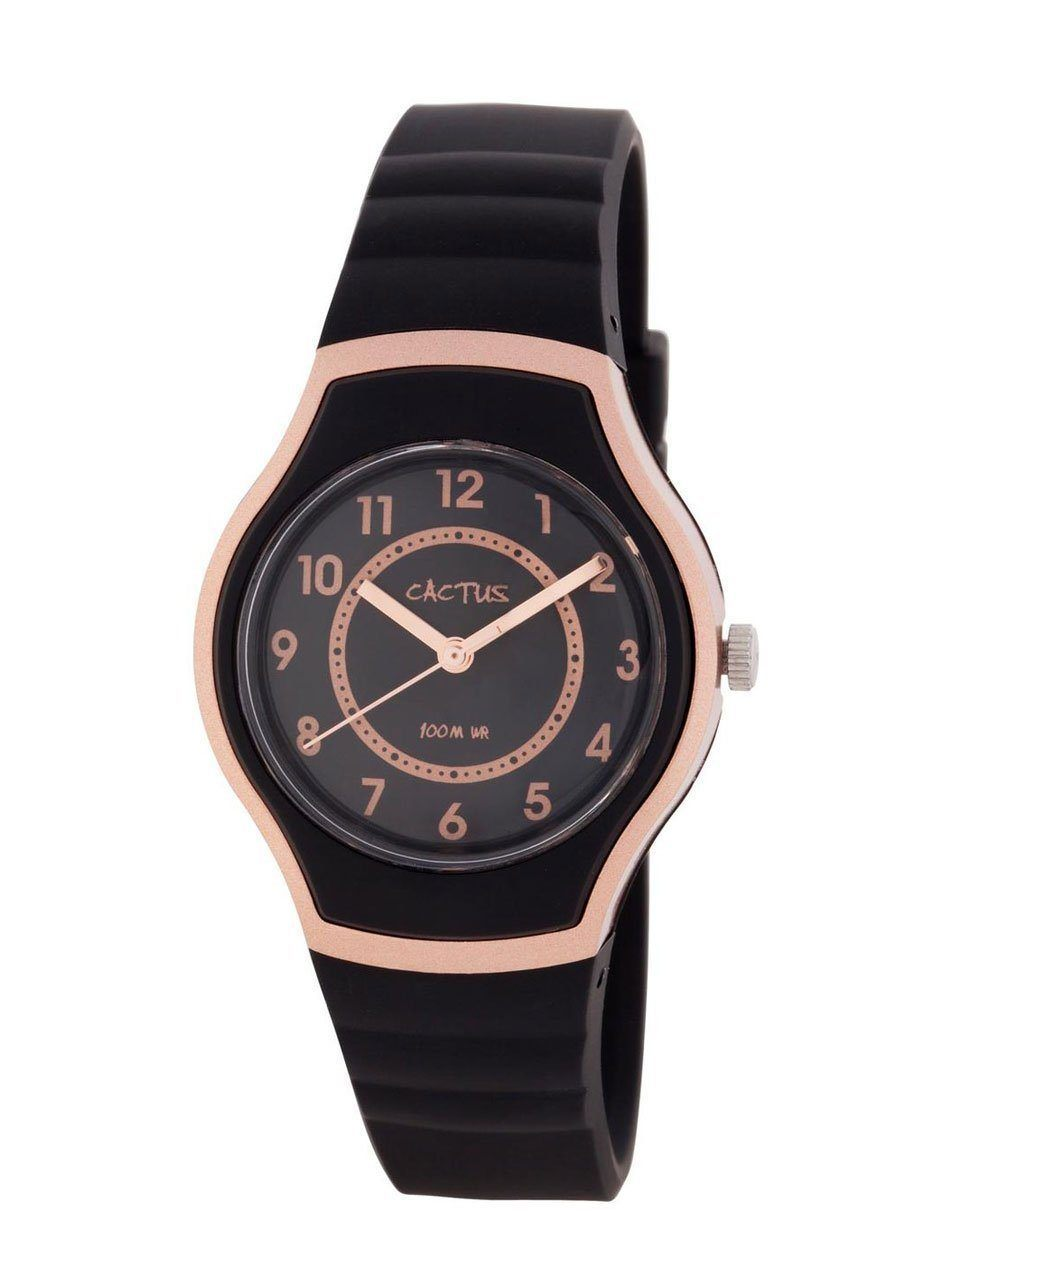 Sunset - Gorgeous Adorable Watch Kids Tweens Teens Waterproof - Rose Gold / Black Watches shop cactus watches